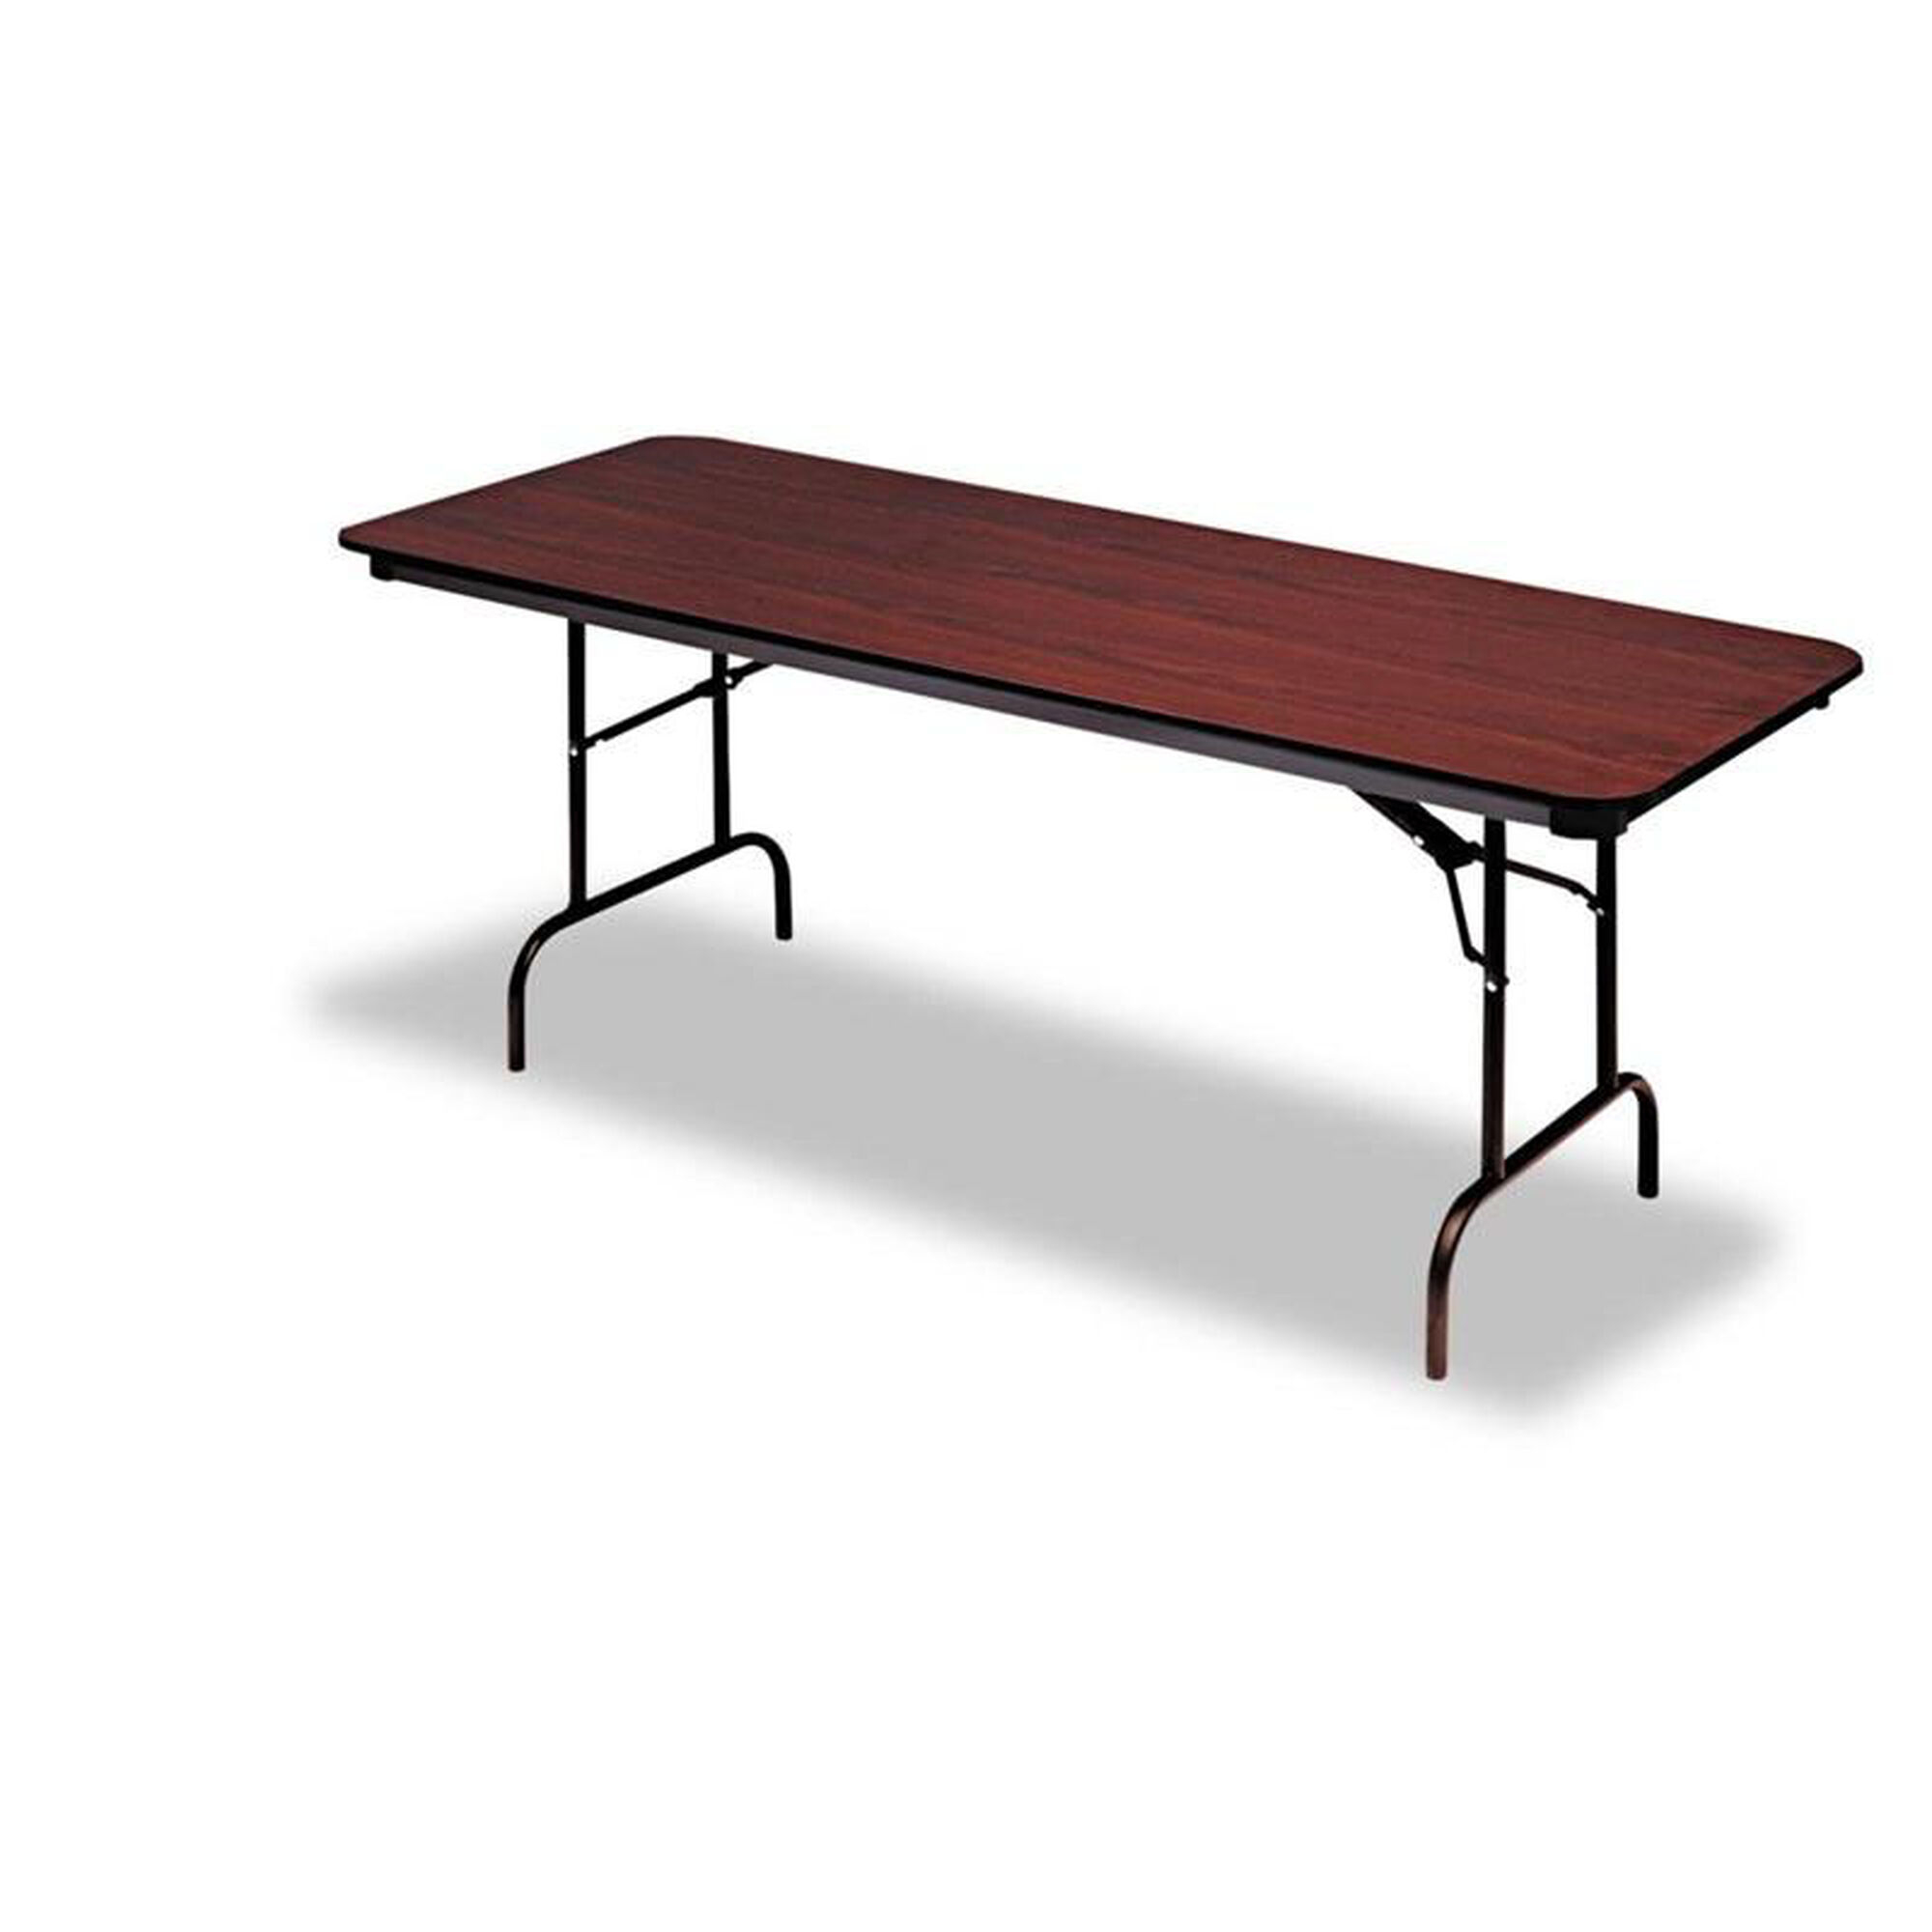 ICE55234   Iceberg Premium Wood Laminate Folding Table